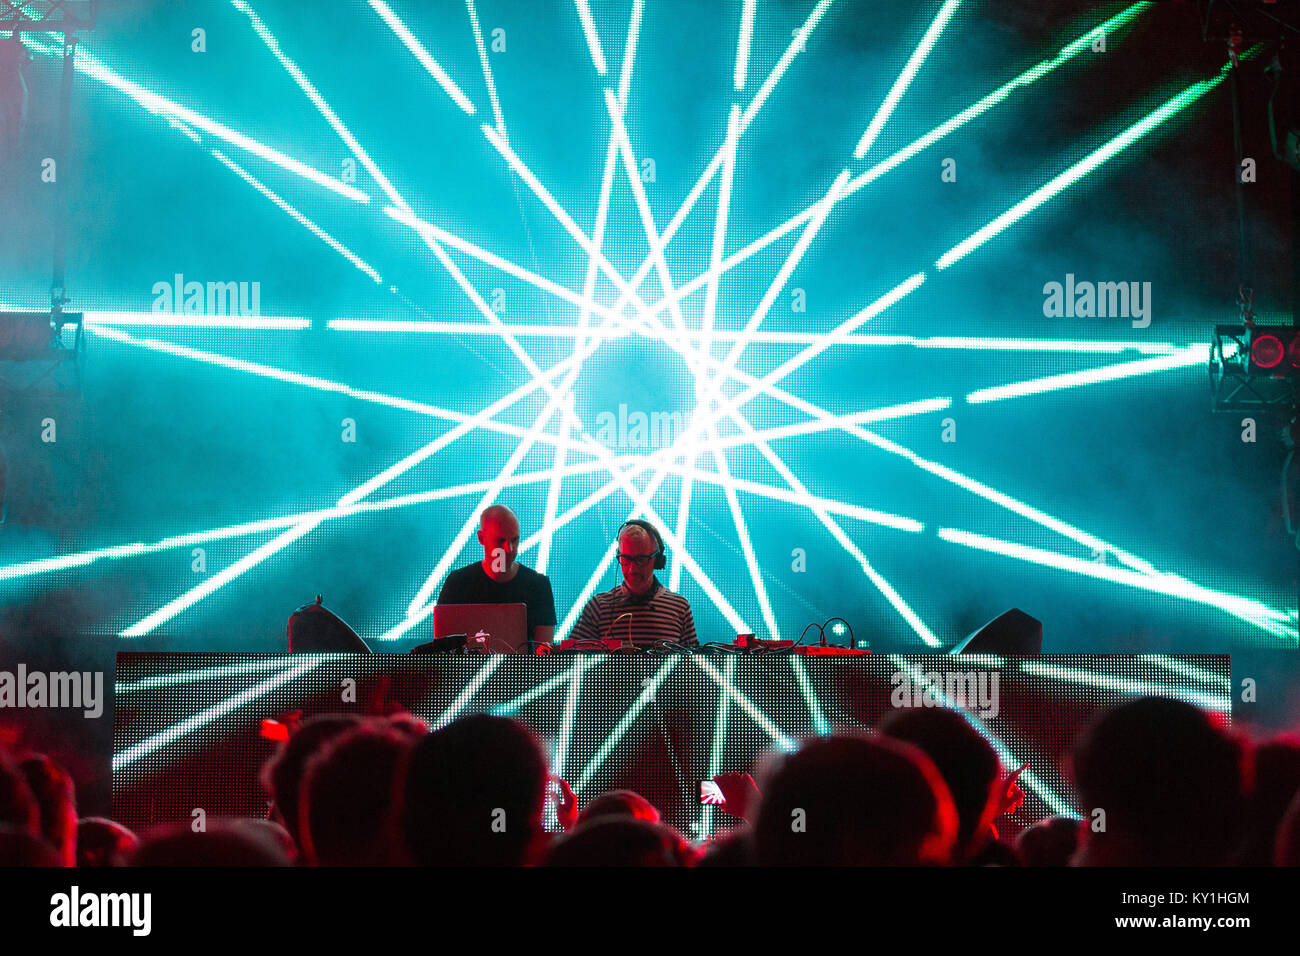 The British progressive trance group Above & Beyond performs